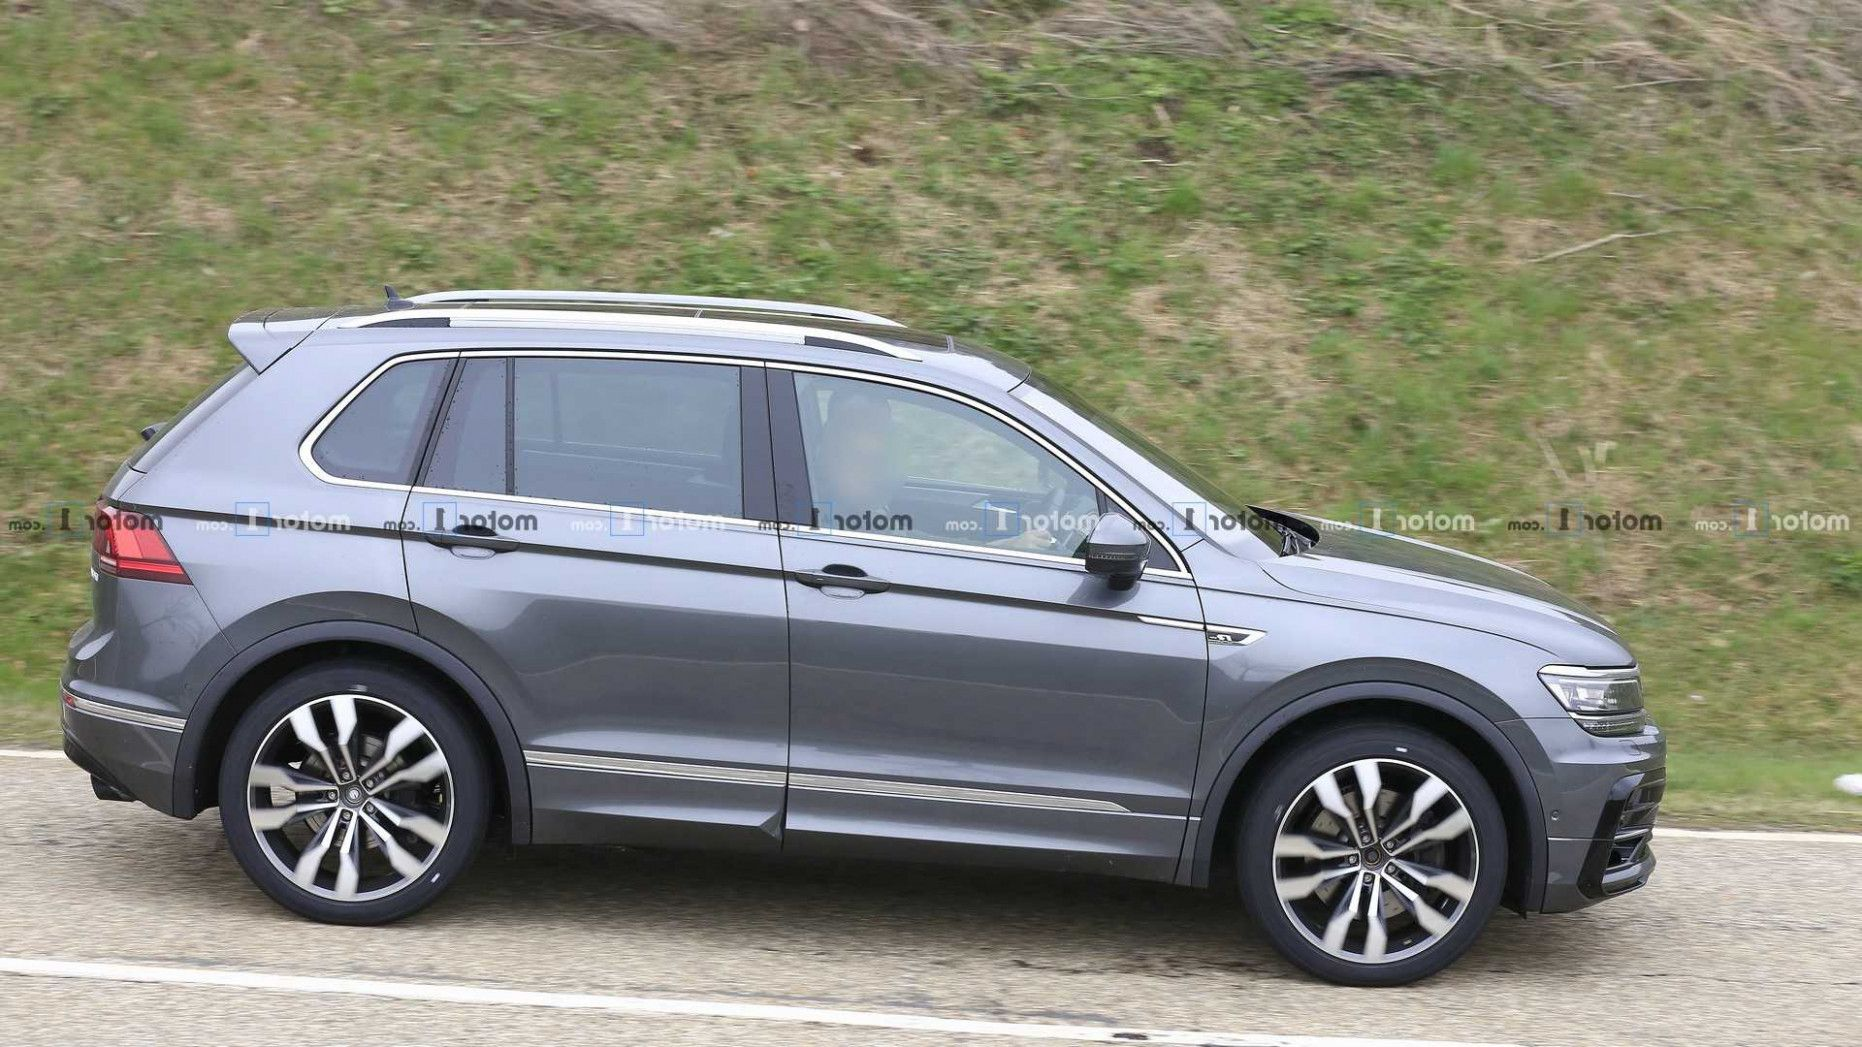 5 New Thoughts About Volkswagen Tiguan 2020 That Will Turn Your World Upside Down Volkswagen New Thought 2012 Dodge Charger